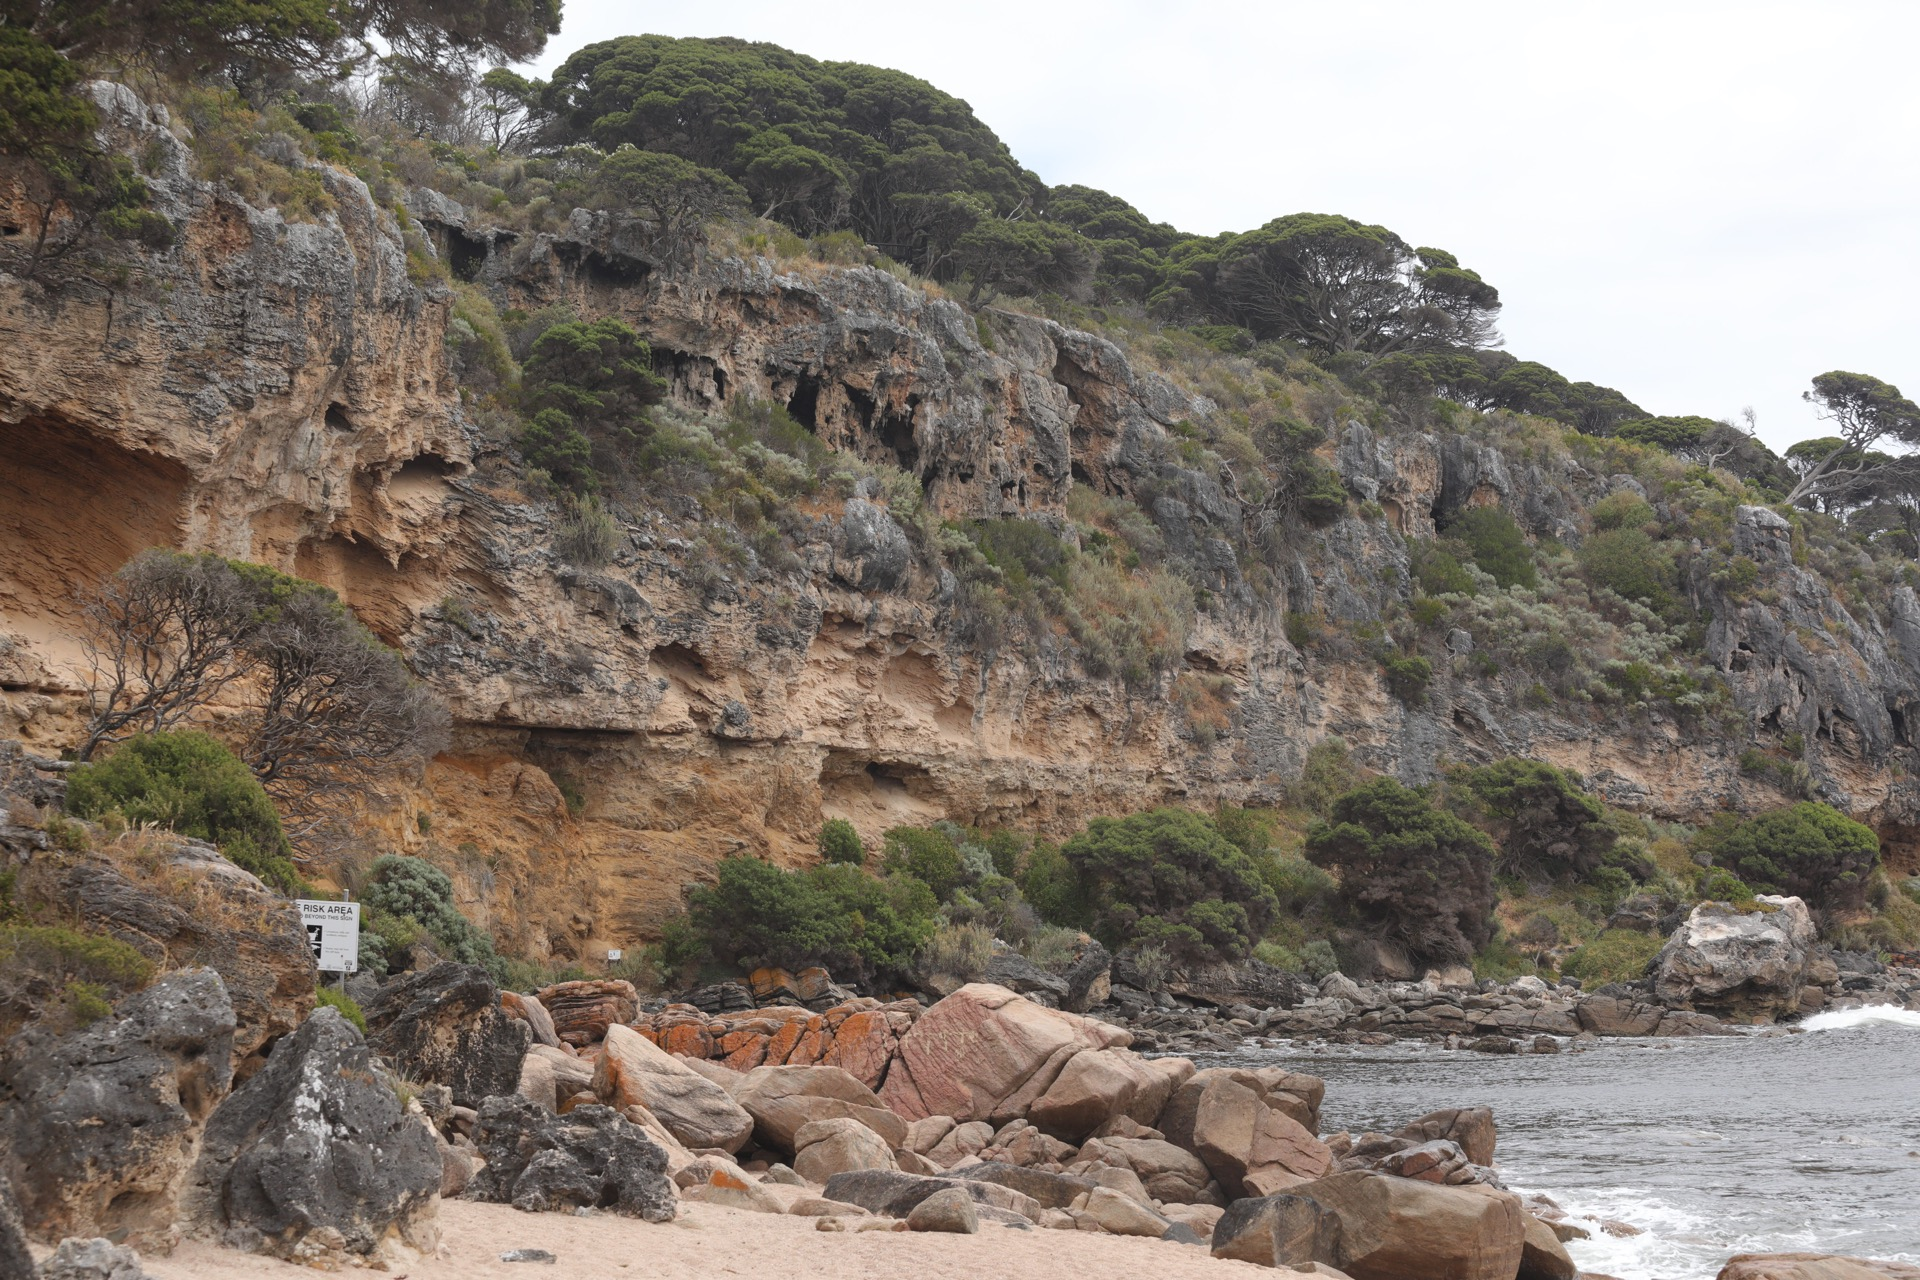 Rocky cliffs at Shelley Cove